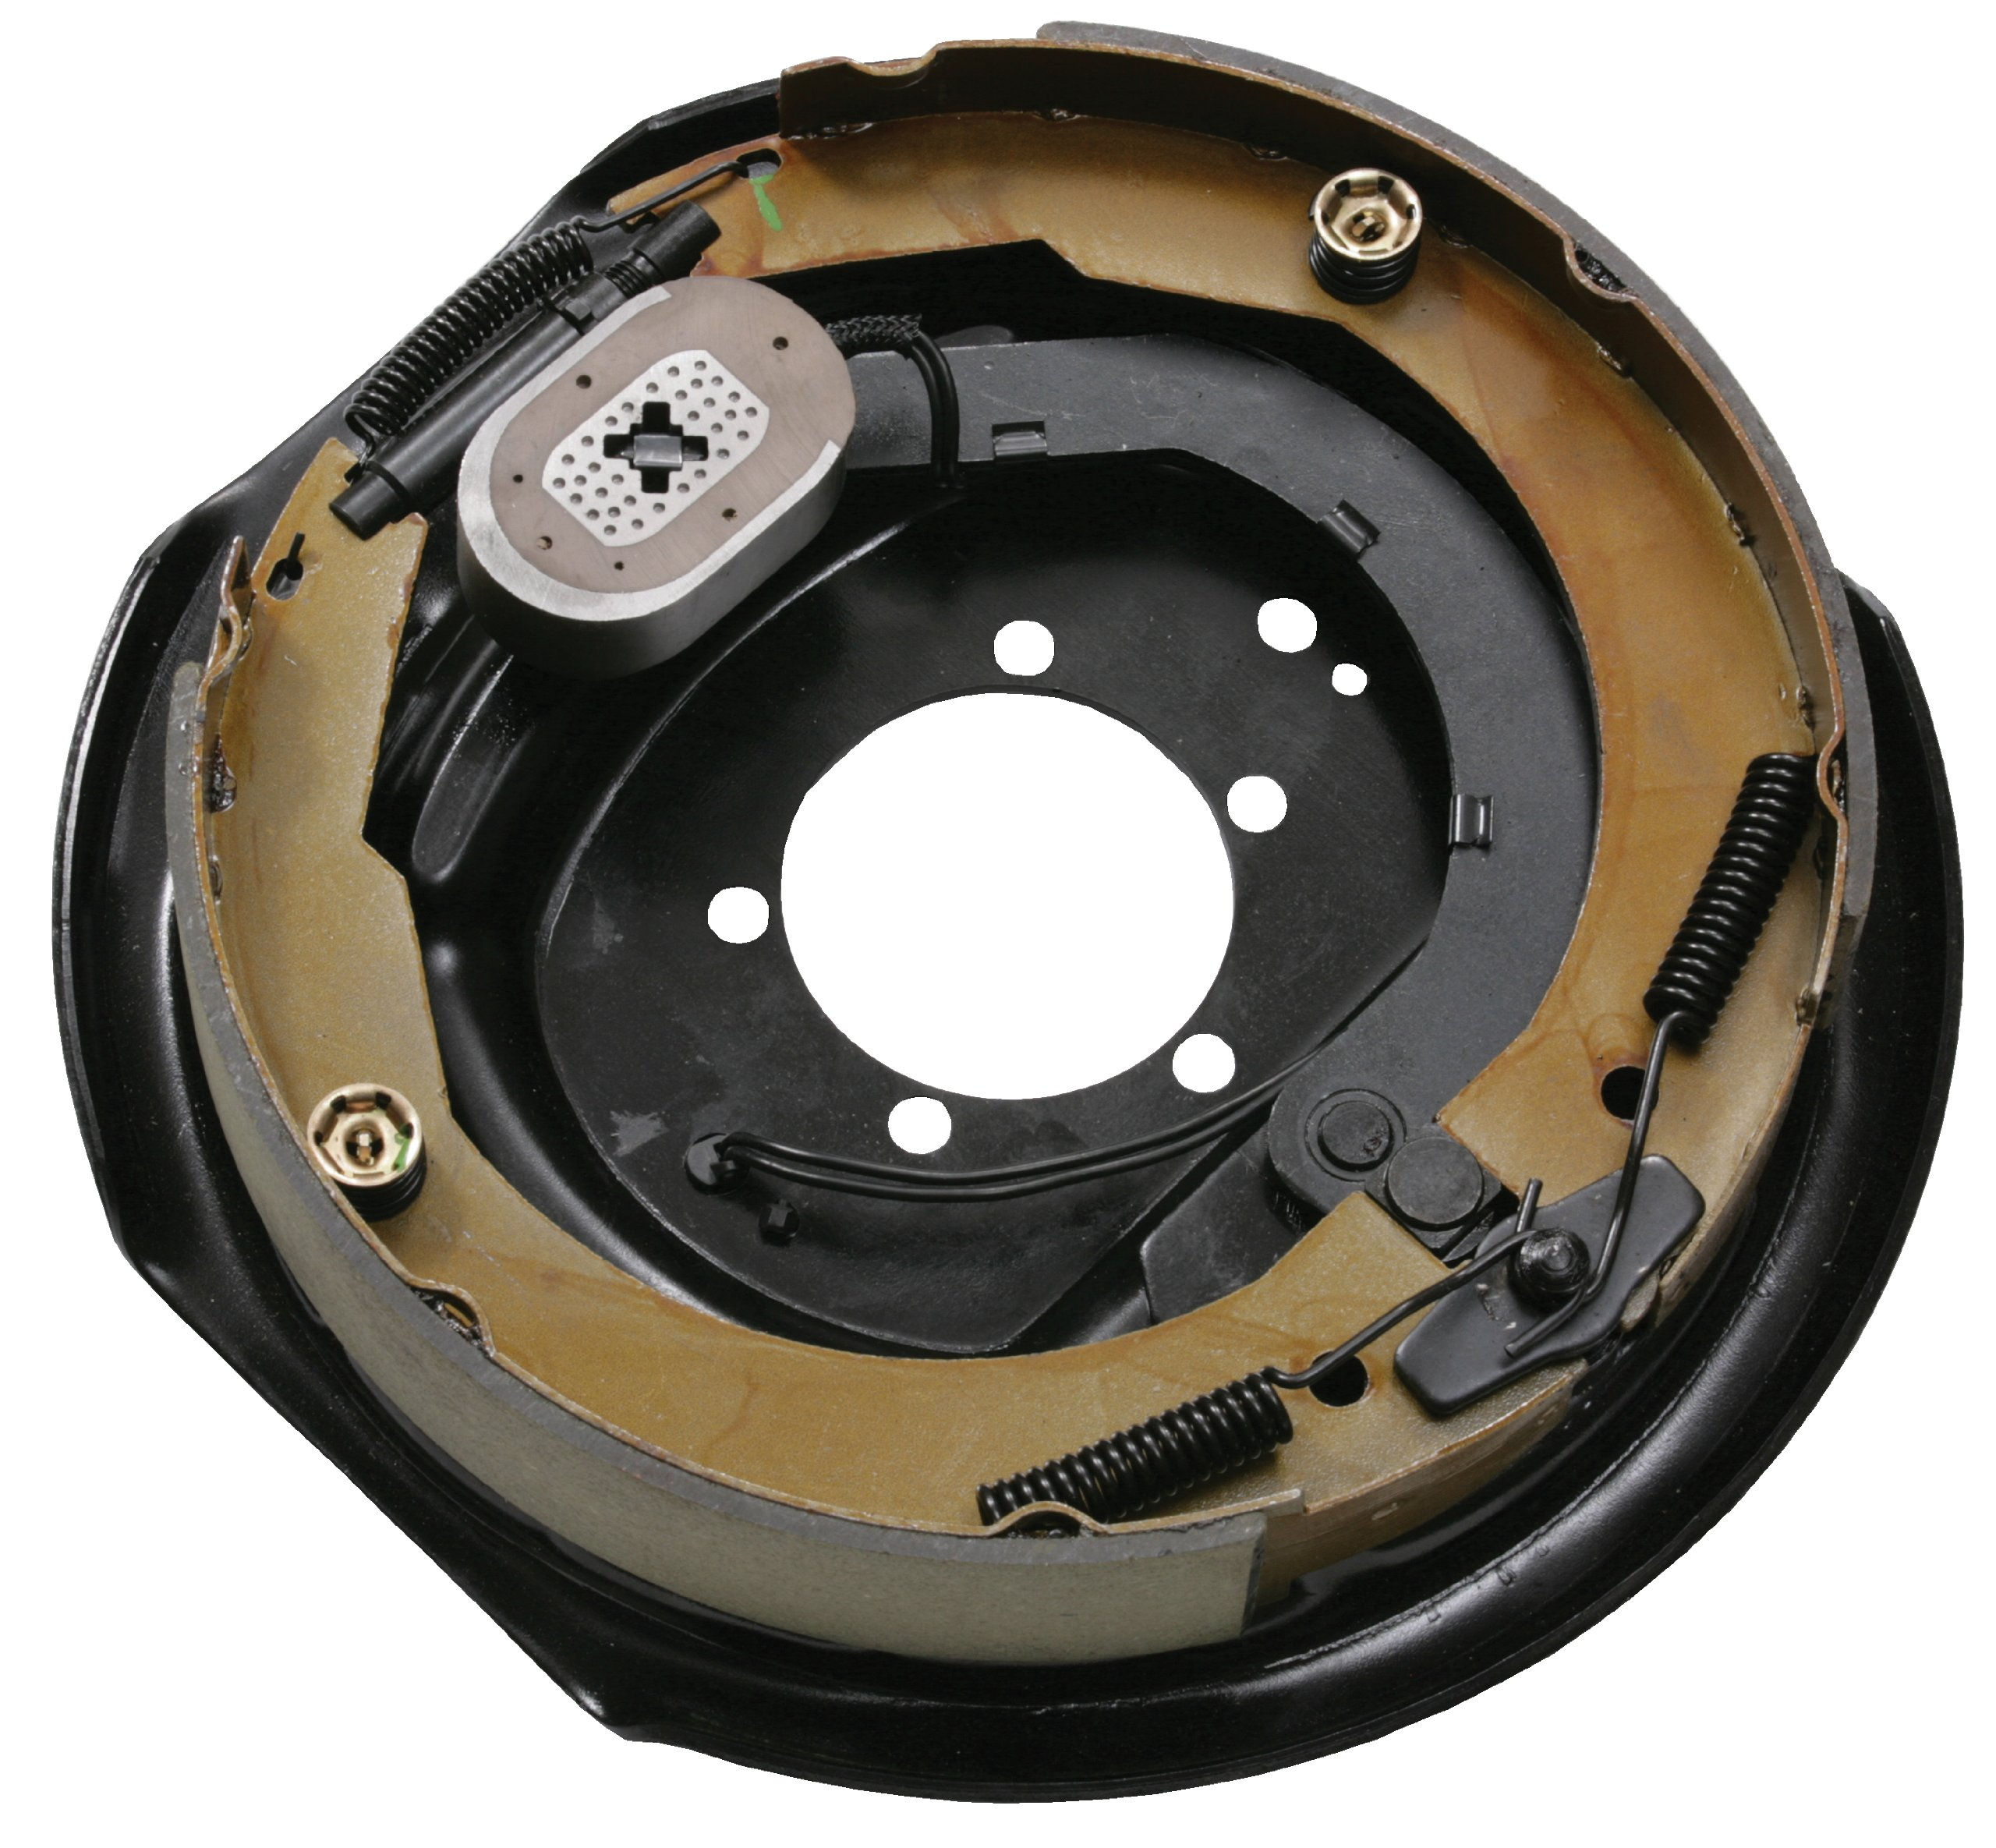 Husky 30800 12'' x 2'' Right Handed Electric Brake Assembly - 4000 to 6000 lbs. Load Capacity